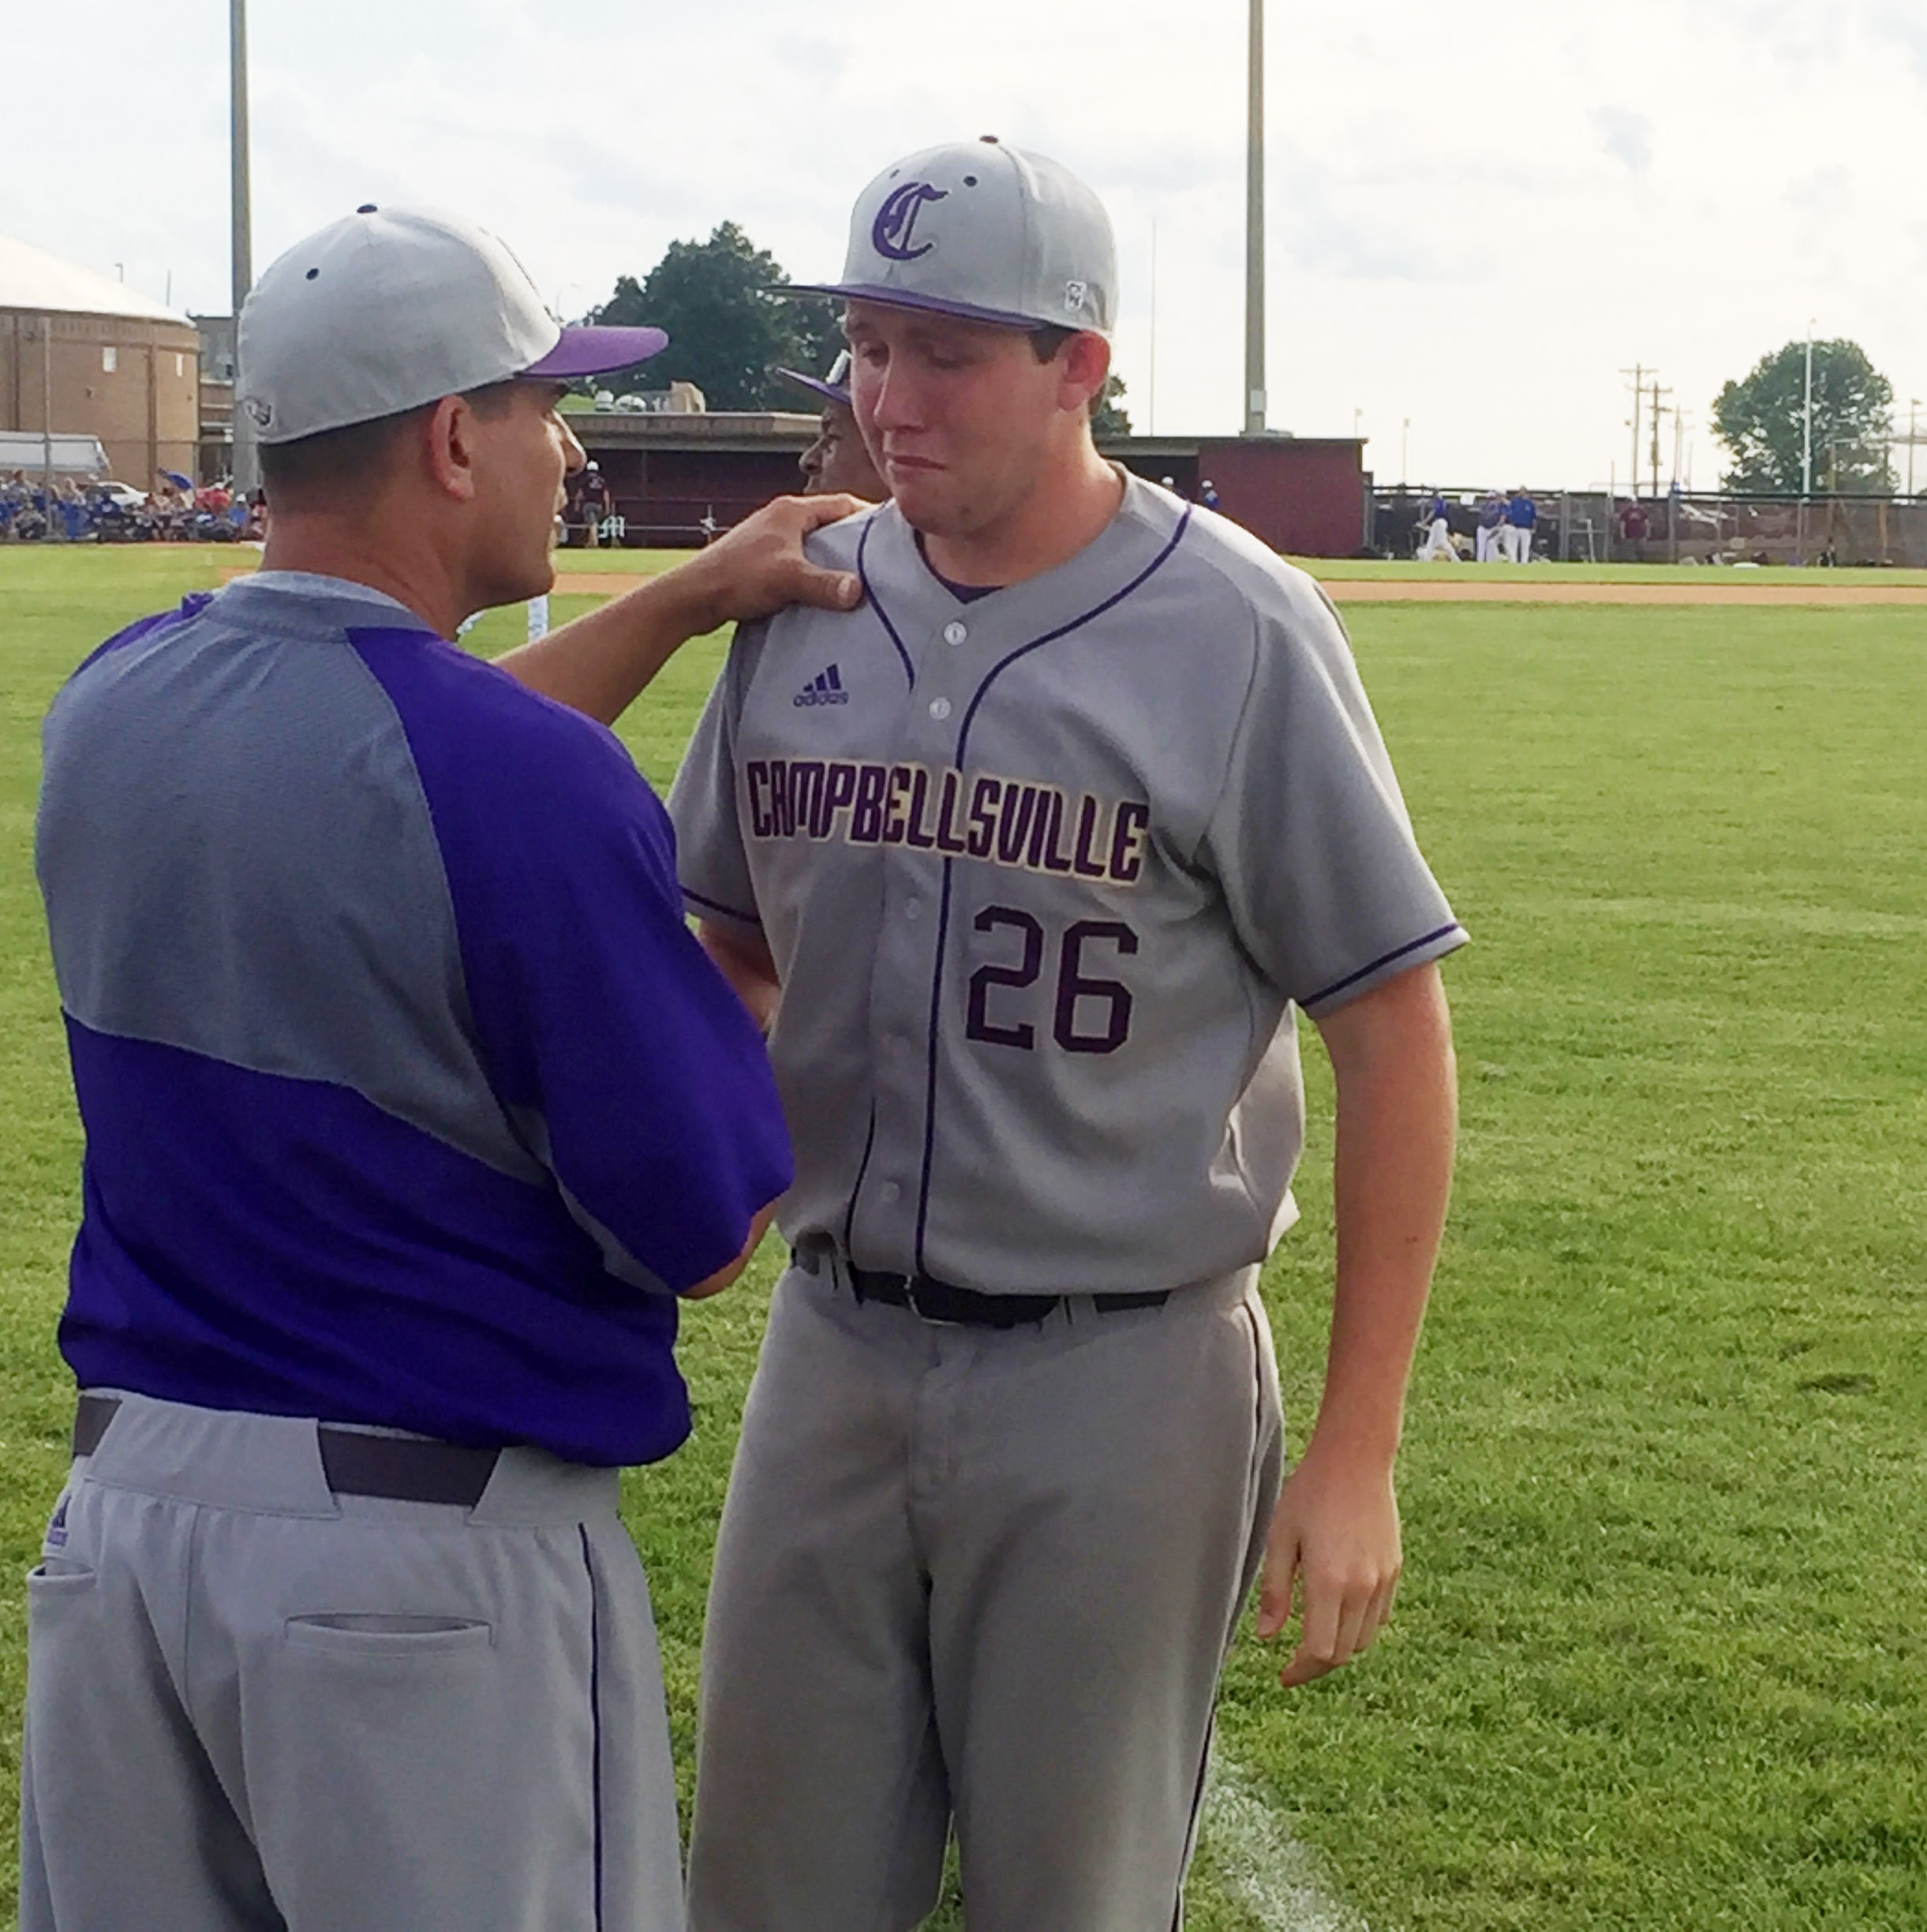 CHS head baseball coach Kirby Smith thanks senior Jared Brewster for his leadership and dedication to his team.